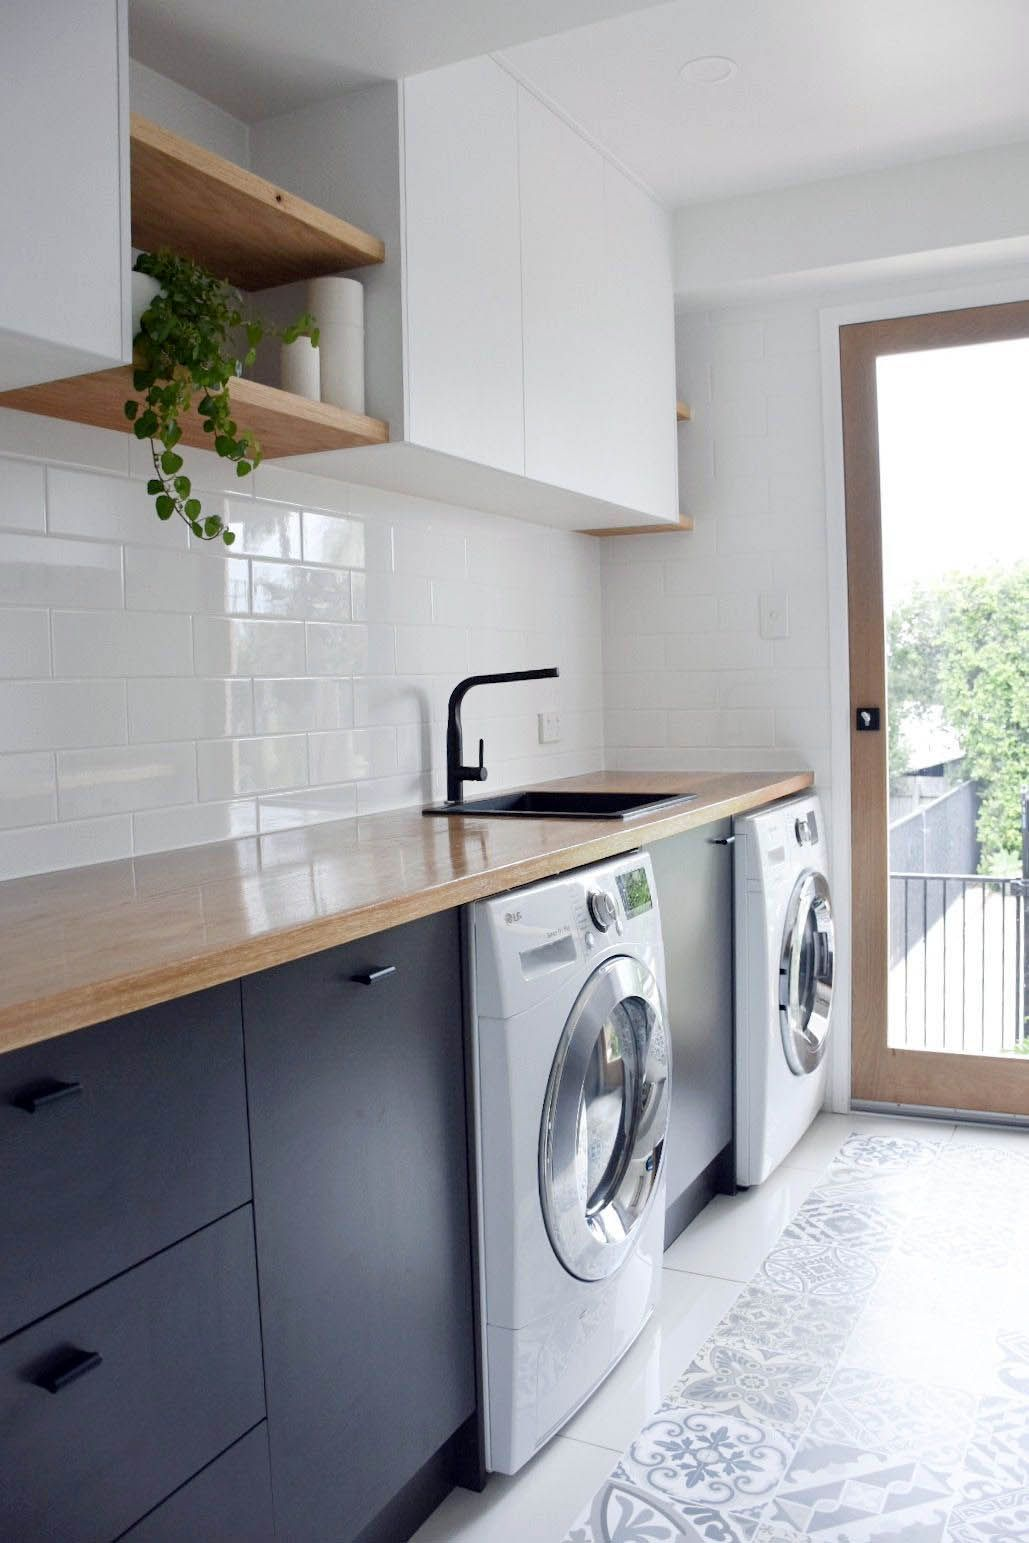 Stylish Small Kitchen Dining Laundry Room Ideas Just On Indoneso Com Modern Laundry Rooms Laundry Room Design Laundry In Bathroom